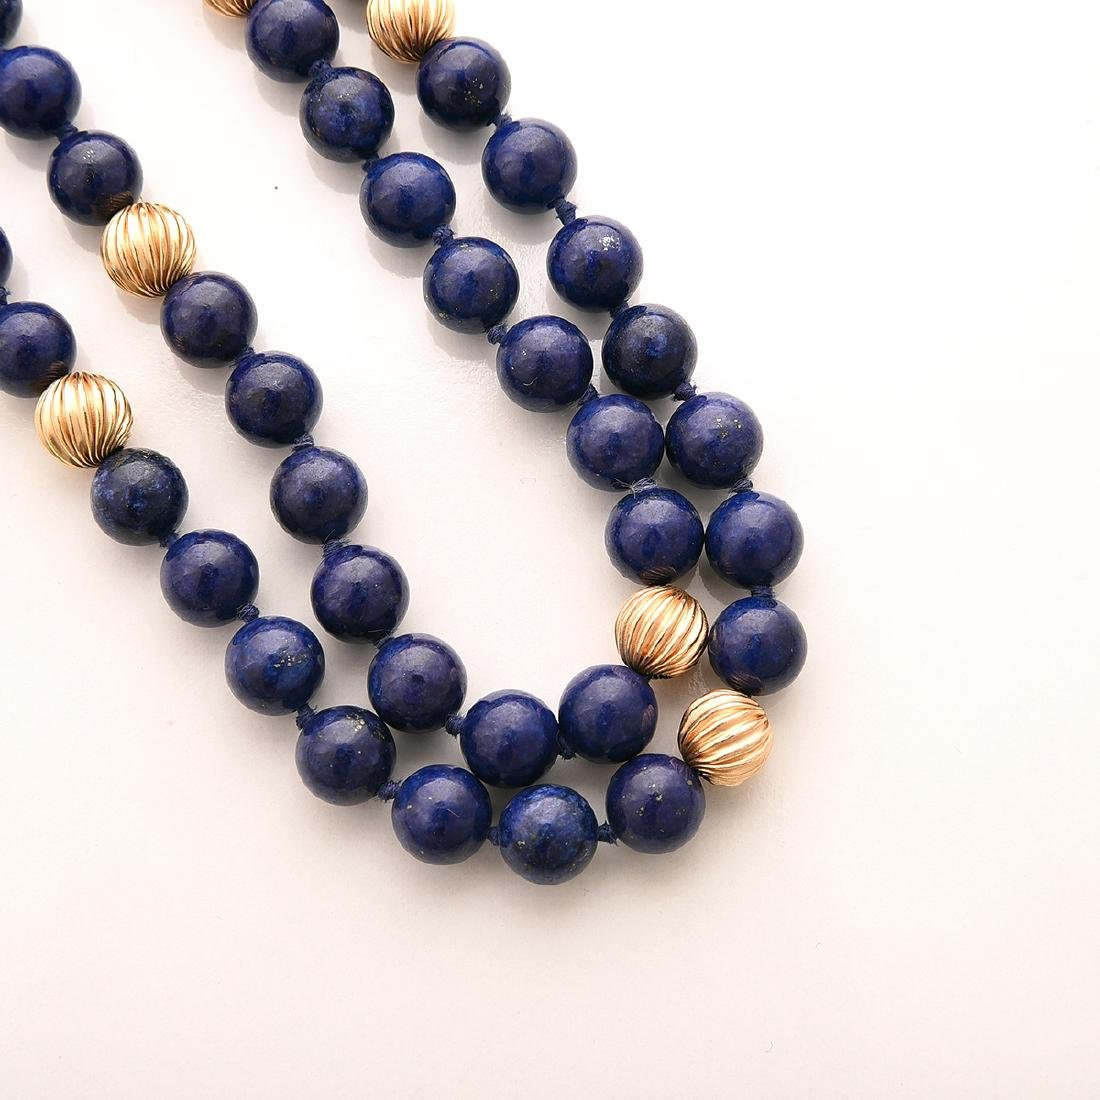 Collection of Lapis, 14k Yellow Gold Jewelry Items. - 3